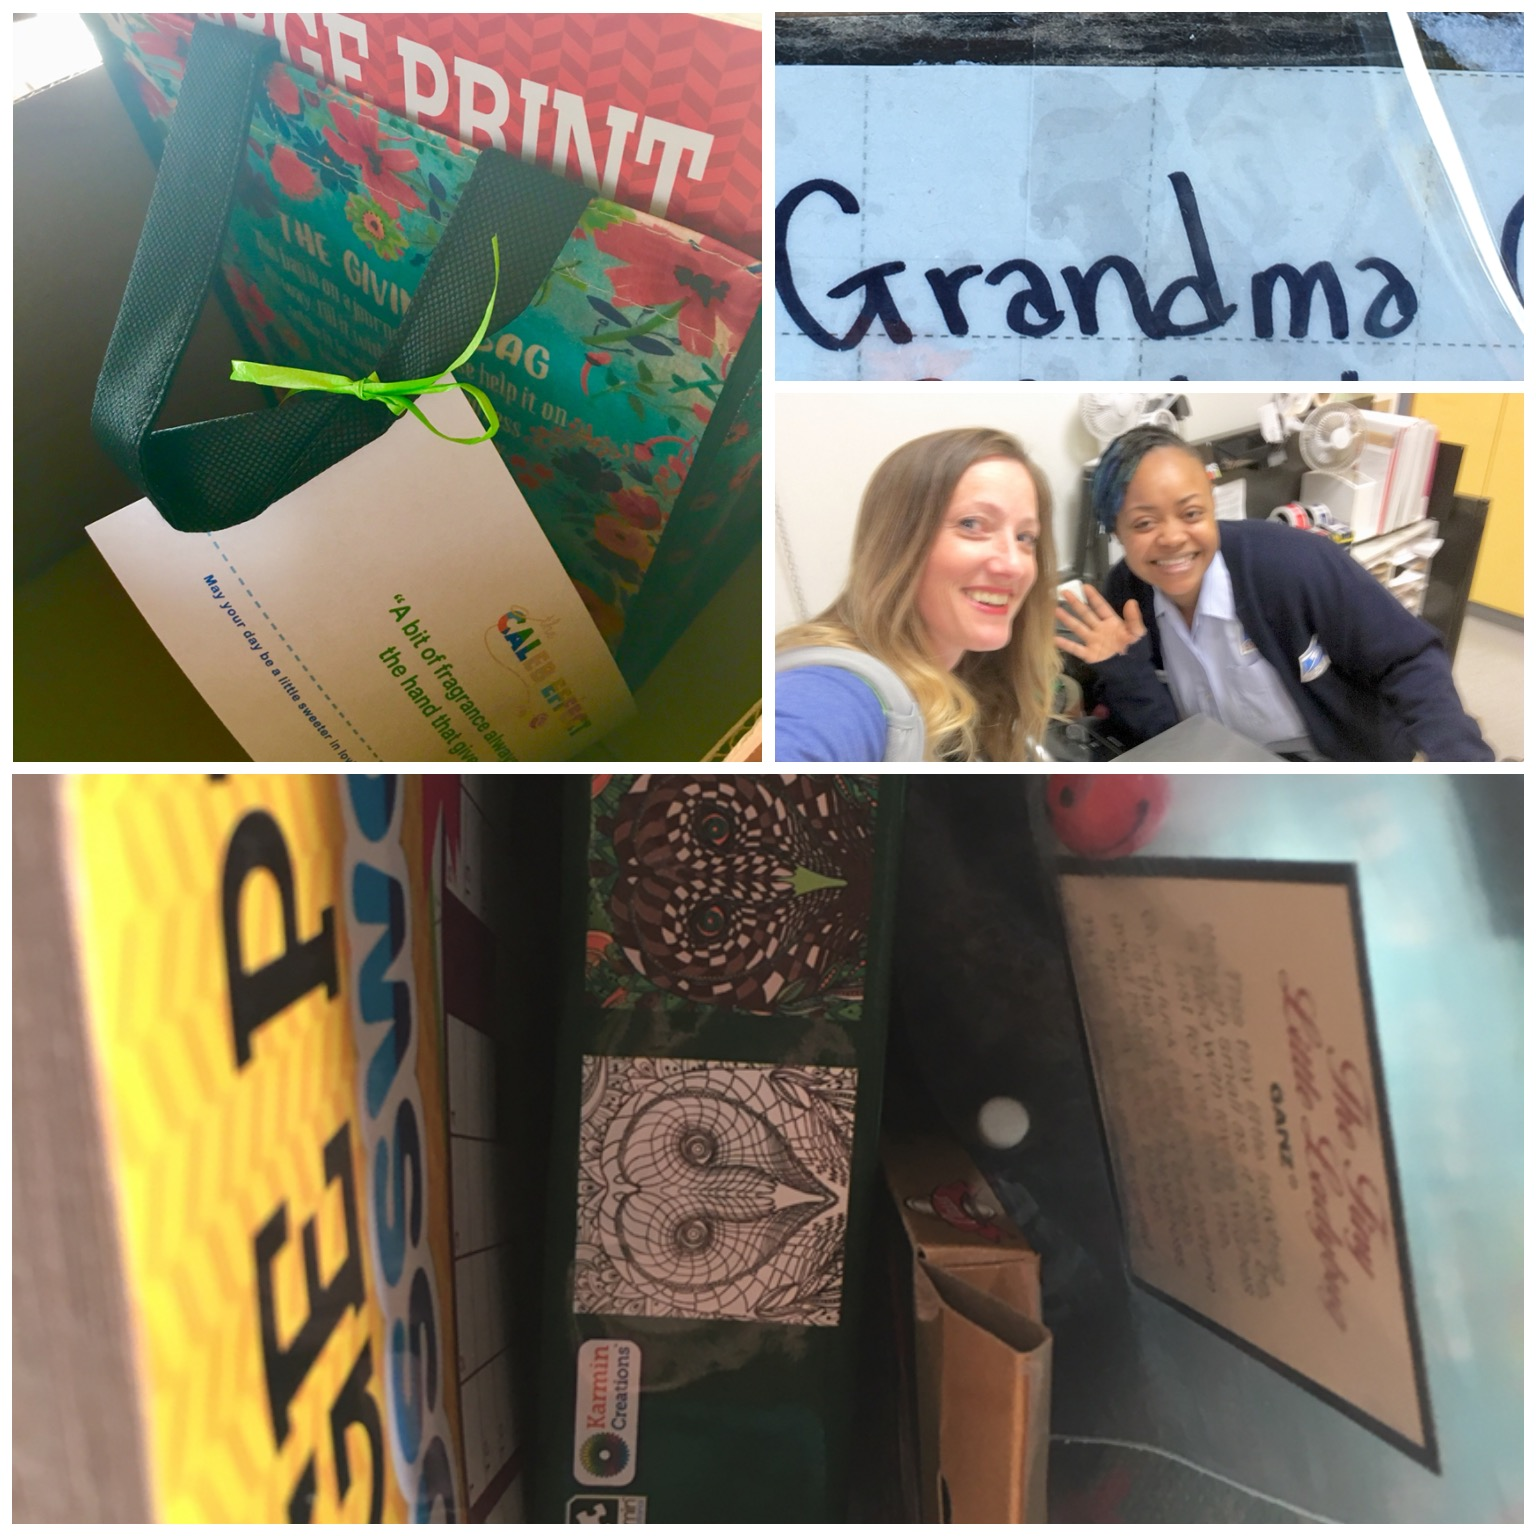 """Where am I? What stop is this? Oh yes: Stop #6-USPS Sent some love and mailed a package to my only living grandparent, your great-grandma. I met my new friend KiKi (not sure if that is how you spell it or not because according to her name tag, as I teased her, her name was """"Trainee"""").I liked her right away. She had fun hair with blue and green accents, so that made me know she didn't take herself too seriously. I was the only customer in there (also highly unusual) so she was taking her time and being friendly with me. Her questions went beyond the standard """"Do you have anything liquid, fragile, perishable, hazardous, etc?"""" She noticed that the first name on the package was """"Grandma,"""" and asked me if I spent summers in California with my grandma when I was growing up. I told her that I wished I did but that I've only had a few opportunities to see her in my life. I don't normally tell people about you in these kinds of settings, but she was genuinely curious why I was sending this package and I think KiKi even said something asking if there was a specific reason I was sending your great-grandma something. Maybe it is rare for people to mail their grandparents a package so she wanted to know more. I told her about """"Nice On The 9th"""" and gave her one of your cards. The lady at the next station heard me talking about you and about SUDC and showed me a picture she keeps at her station of a friend's little one who also died in their sleep. Her friend's child was under 1, so it was labeled as SIDS, but maybe you have now met this new friend, too.  I reminded them to not take any days for granted and had to get a picture of my new friend. Once again, it was on that weird mode, so blur city was all I got. Maybe they are following your page now and will see this posted. I know they will remember you hopefully for a really long time."""